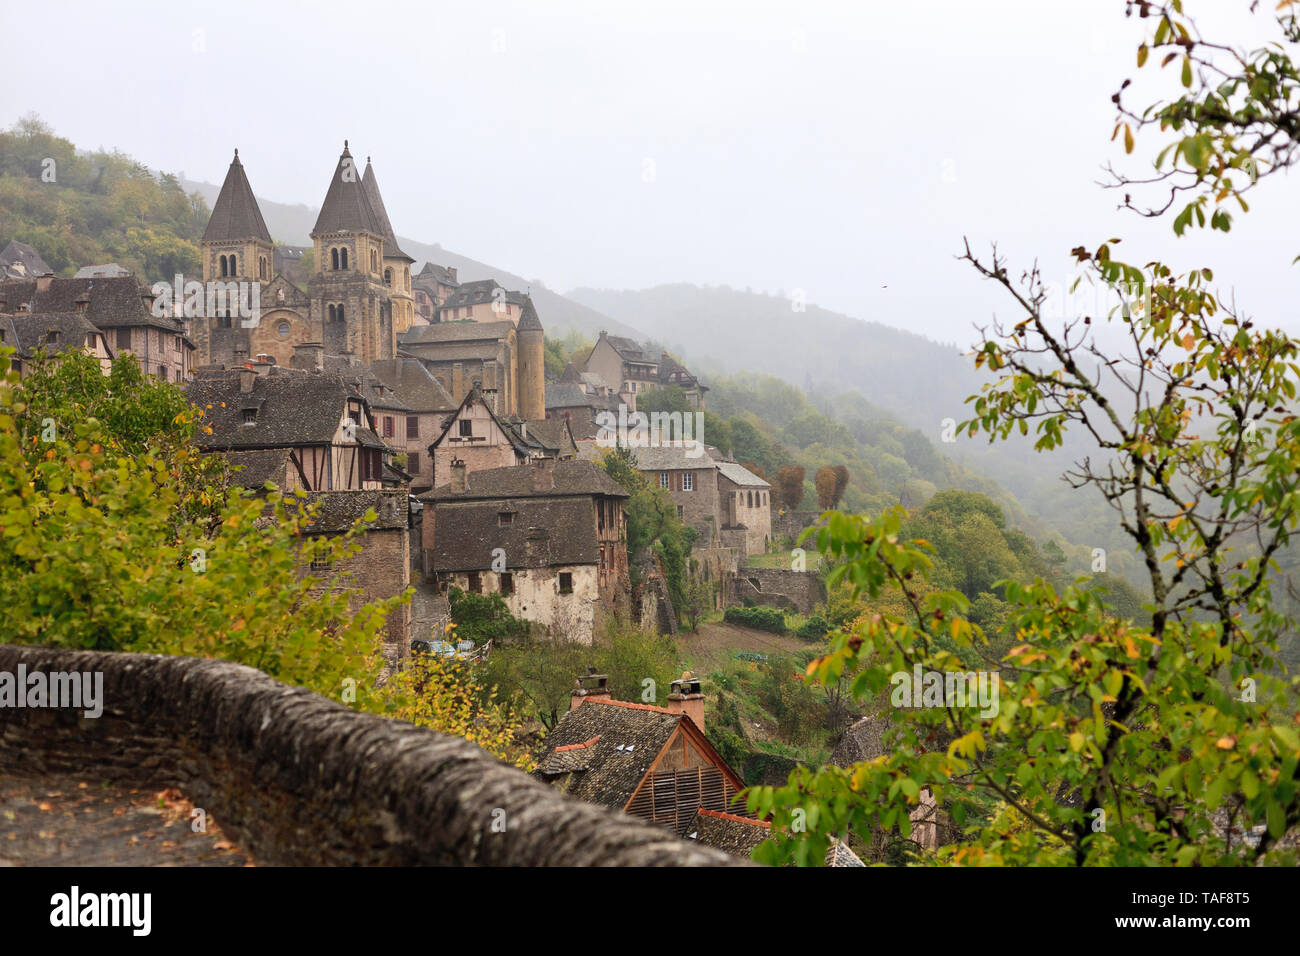 The medieval hamlet of Conques in Aveyron, France - Stock Image